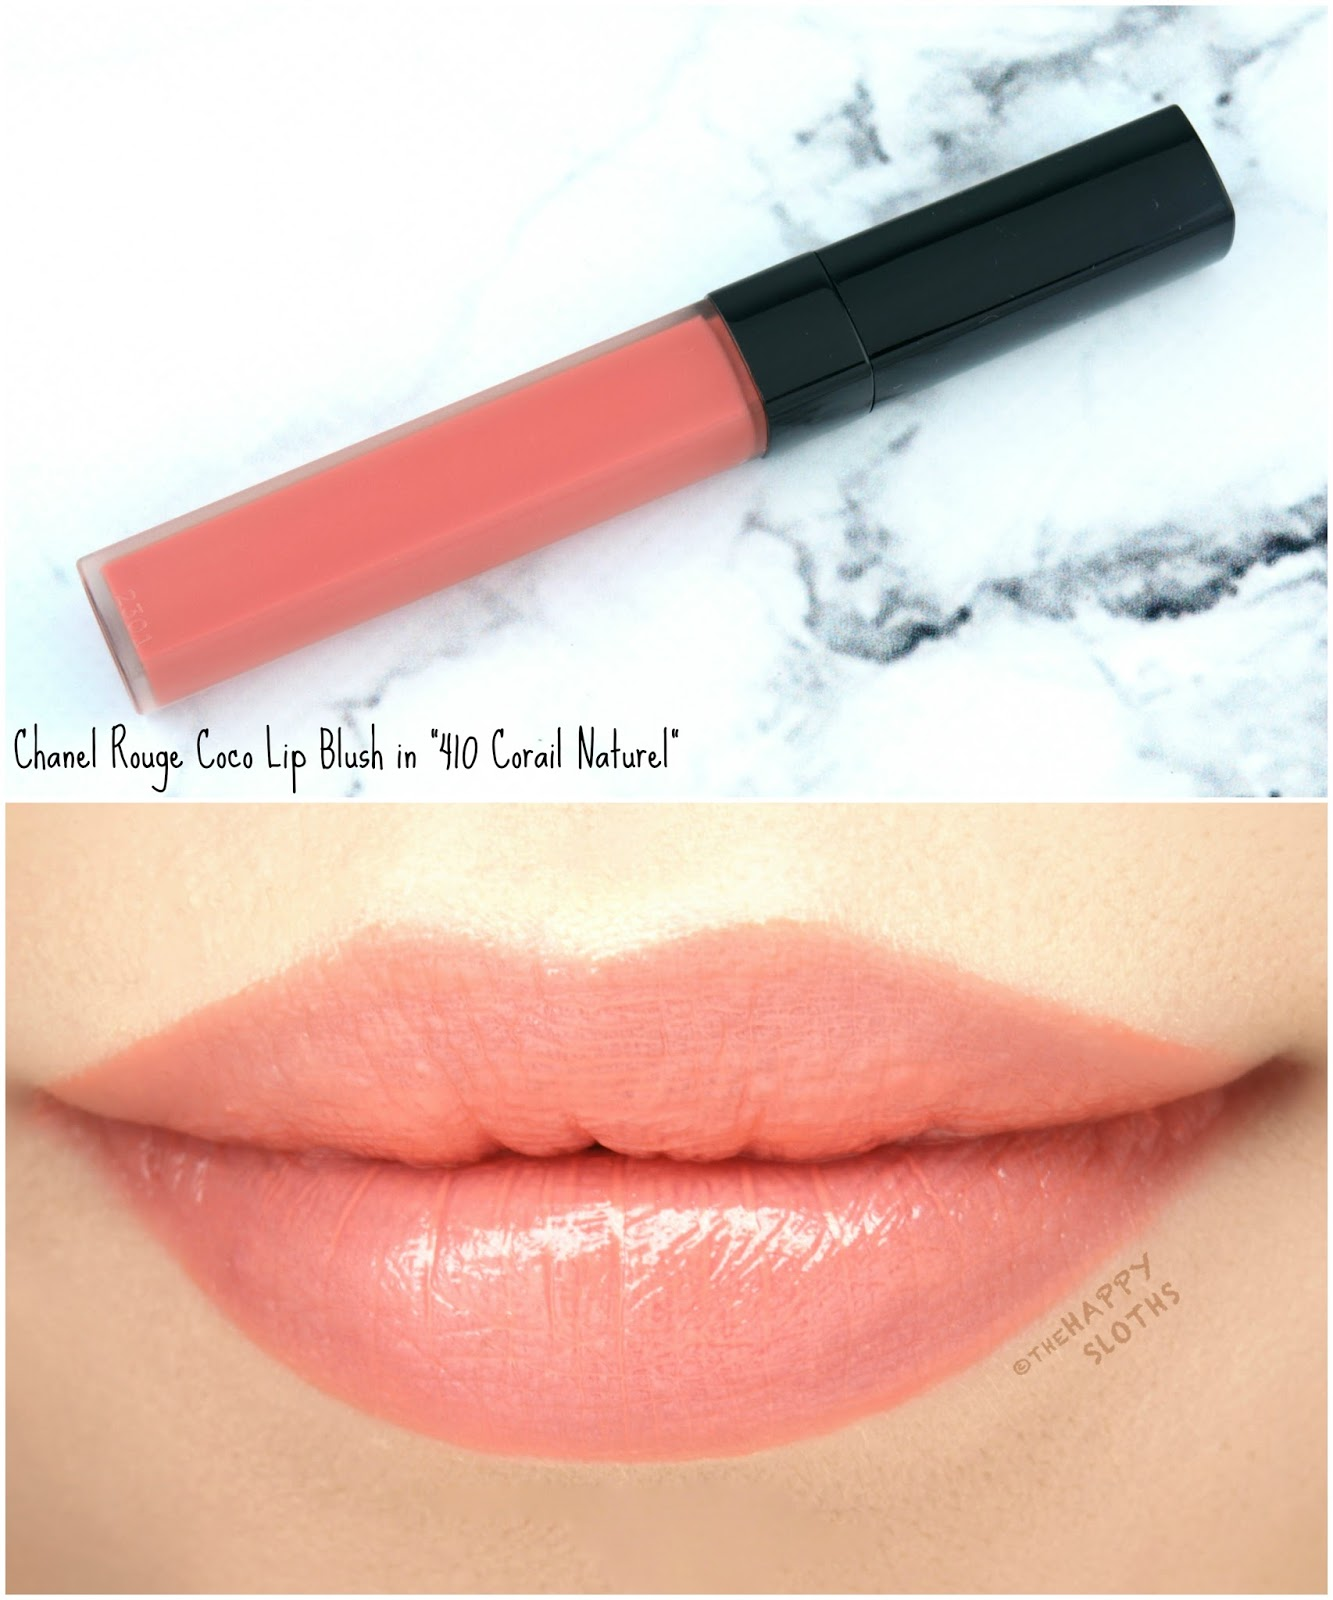 "Chanel Rouge Coco Lip Blush in ""410 Corail Naturel"": Review and Swatches"